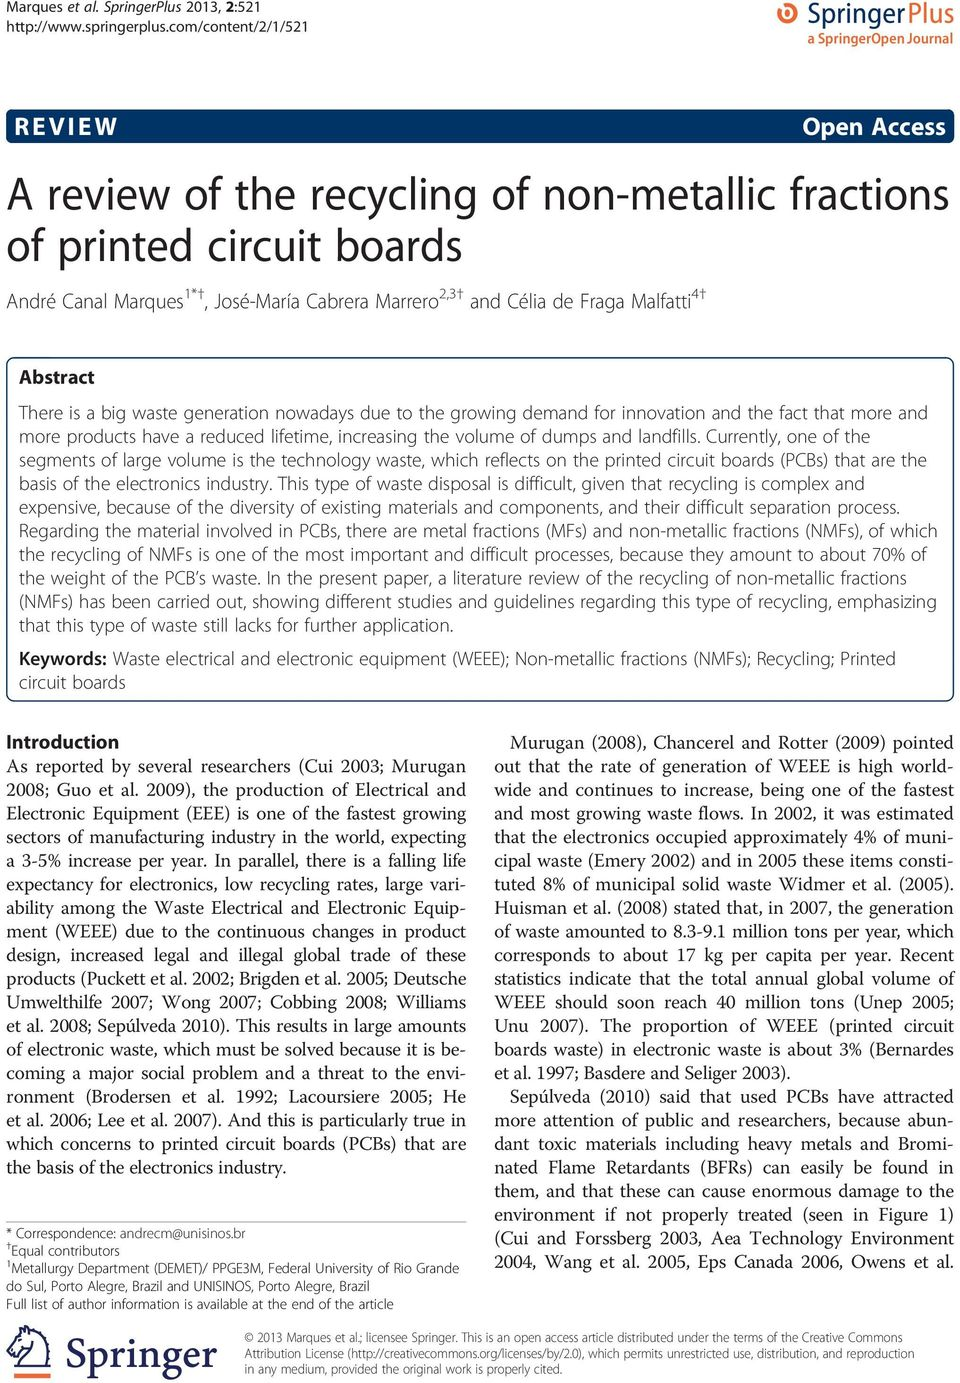 A Review Of The Recycling Non Metallic Fractions Printed Circuit Boards And Clia De Fraga Malfatti 4 Abstract There Is Big Waste Generation Nowadays Due To